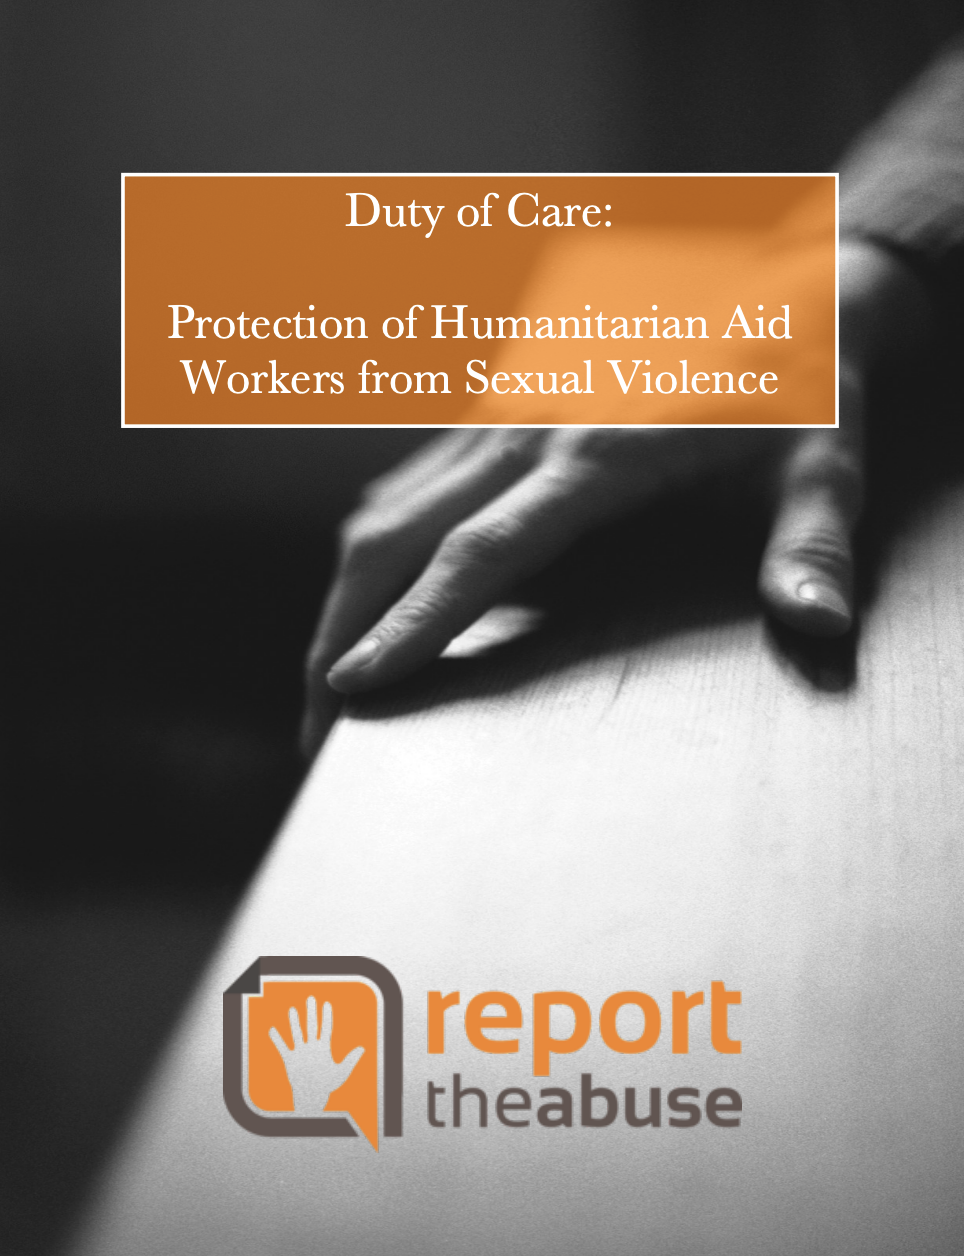 Duty of Care: Protection of Humanitarian Aid Workers from Sexual Violence